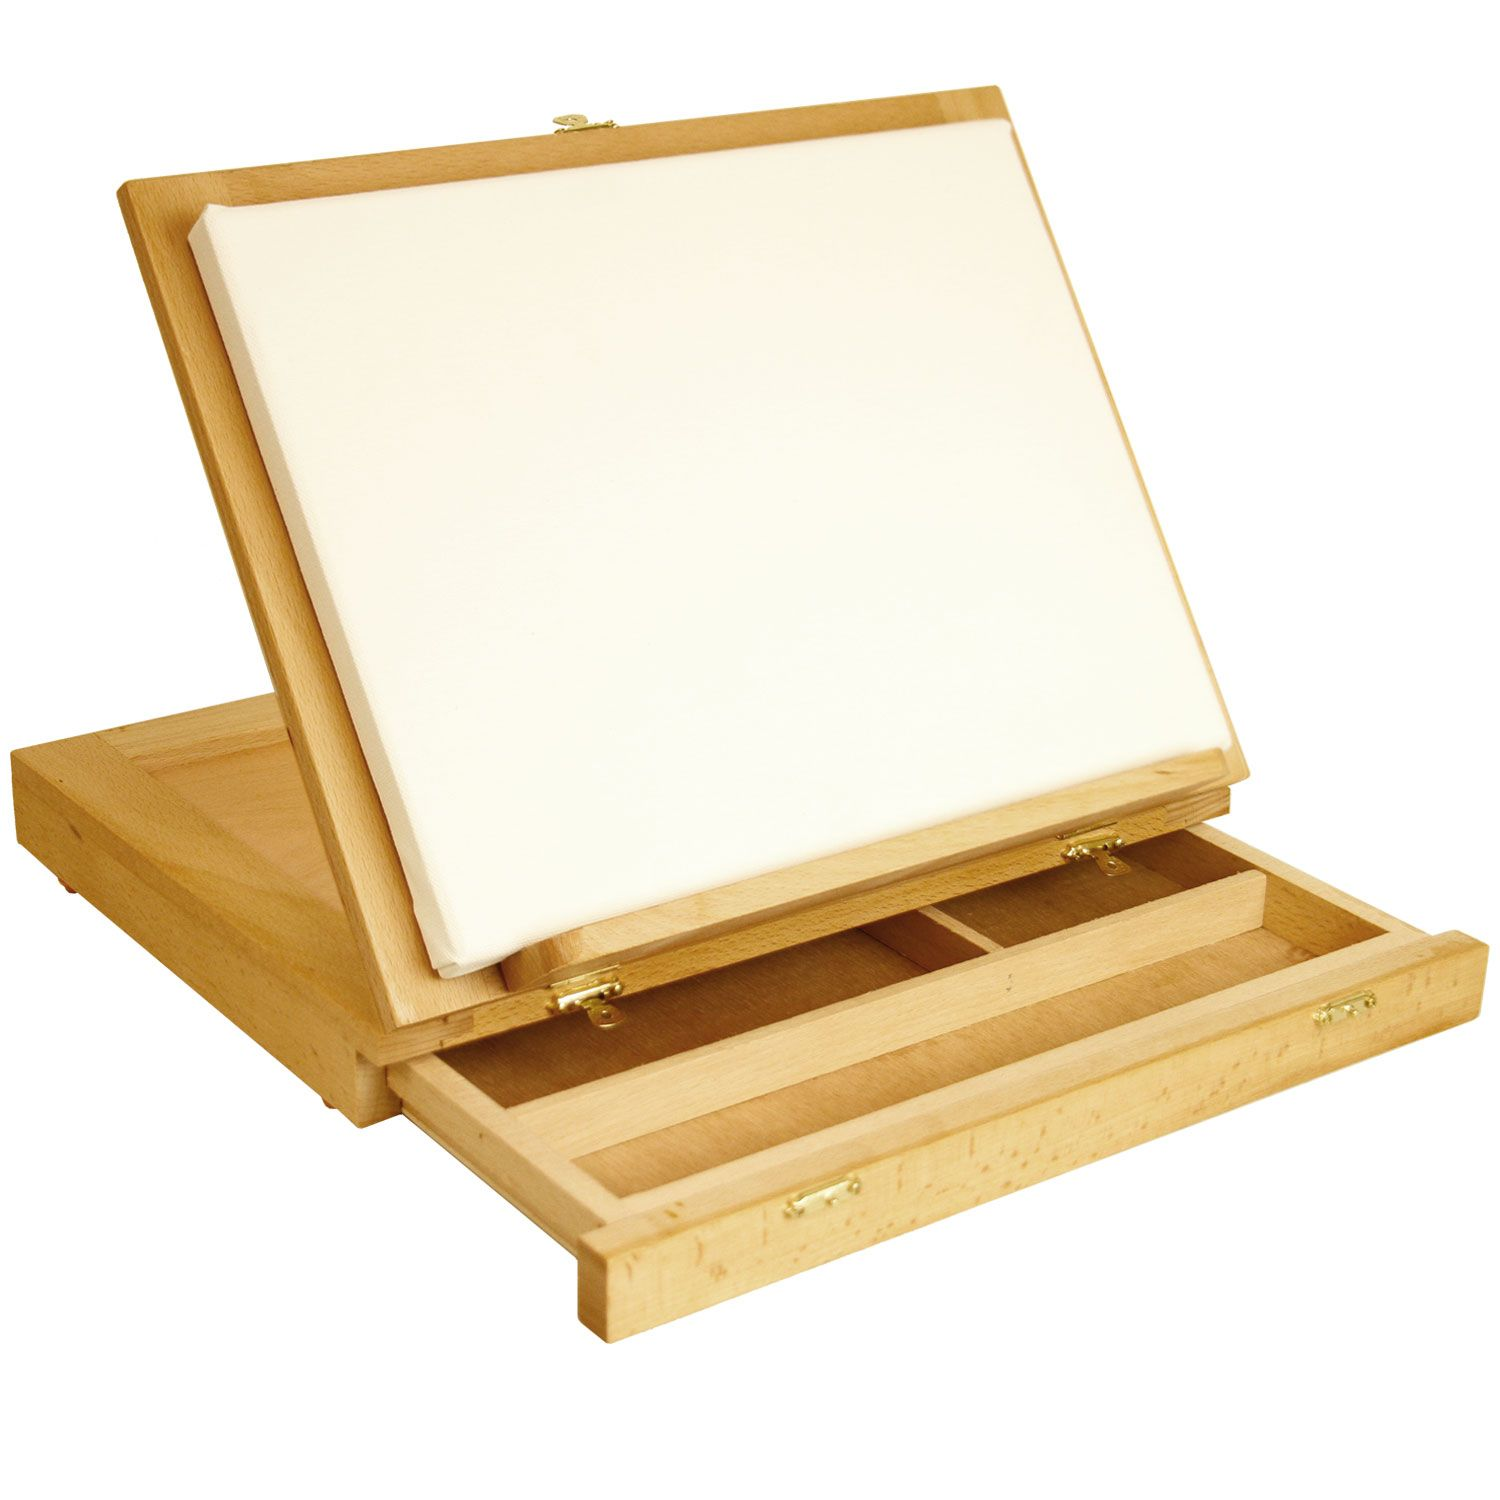 Portable Tabletop Storage Box That Converts To A Painting Easel With 1 Easy  Adjustment. The Easel Incline Adjusts To Four Positions And Will  Accommodate A ...